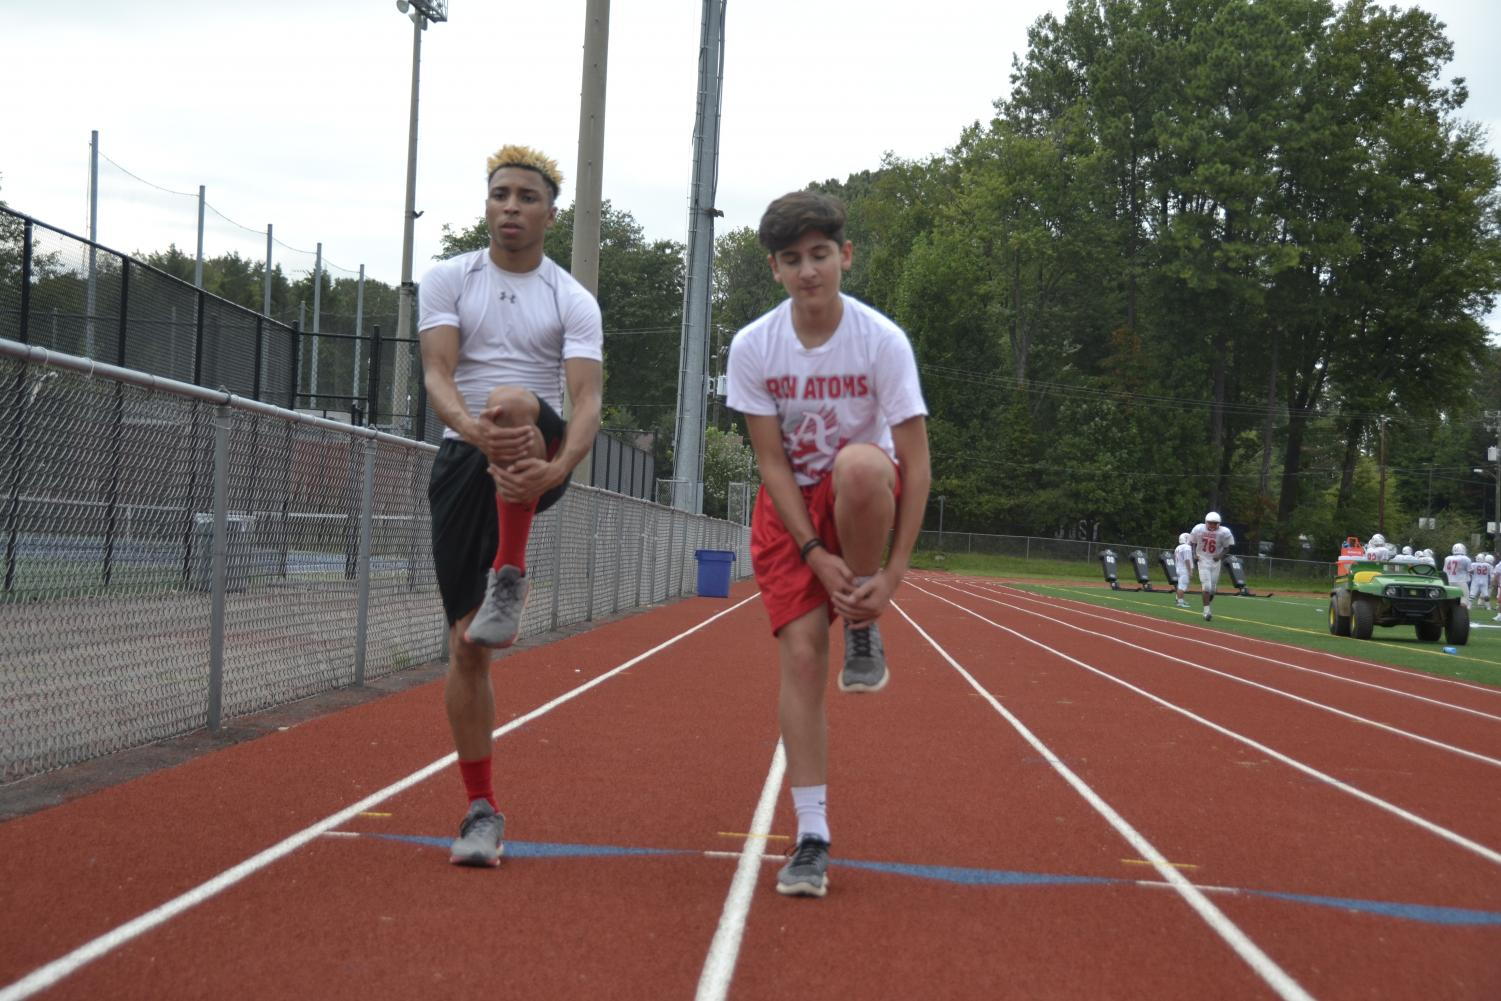 Jay Pendarvis (Left) and Tarik Darwiesh (Right) stretch in order to prepare for a run during a Green Day for track.